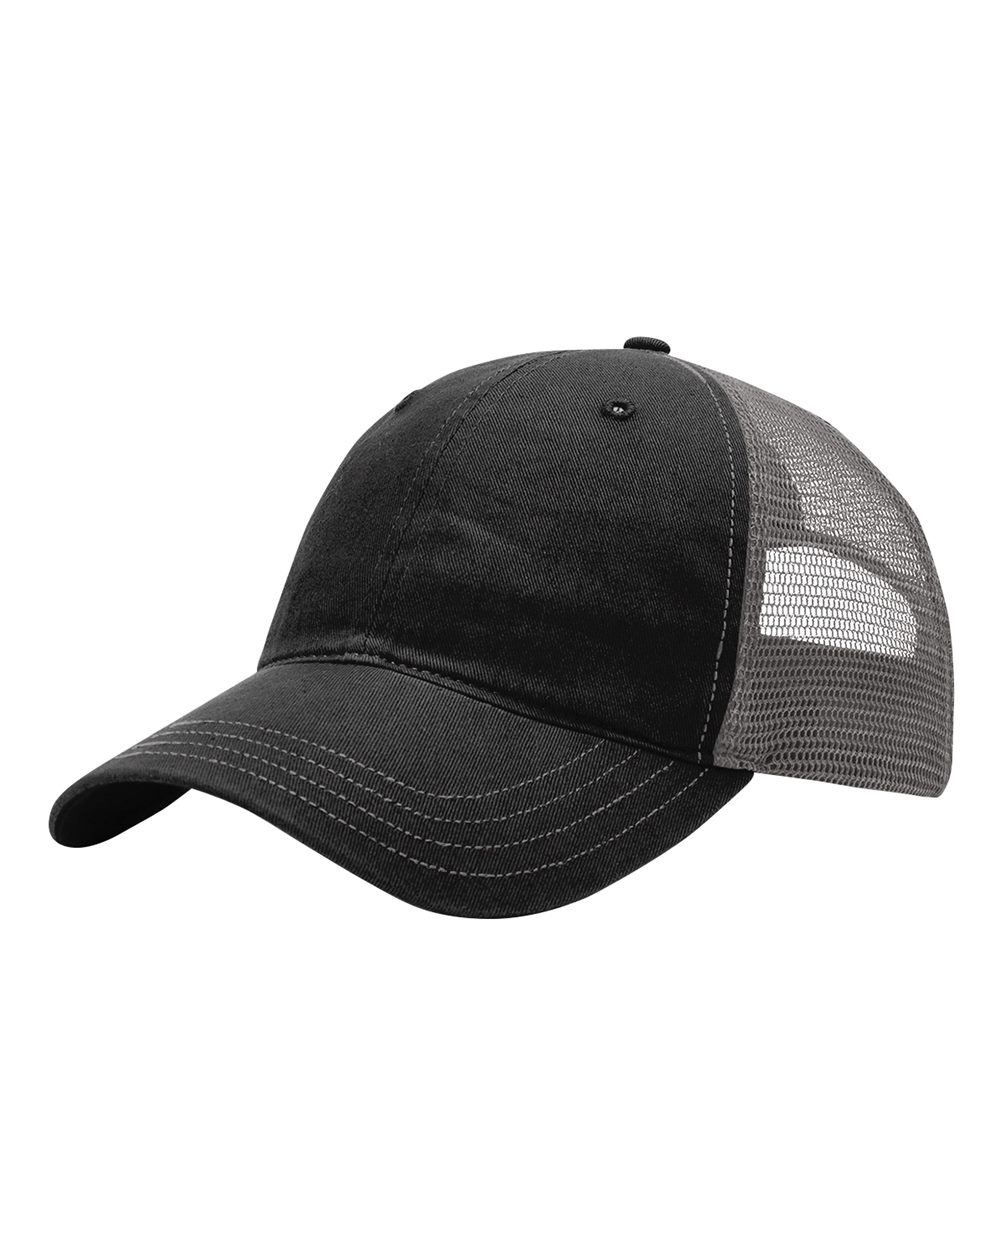 Richardson 111 - Garment Washed Trucker Cap